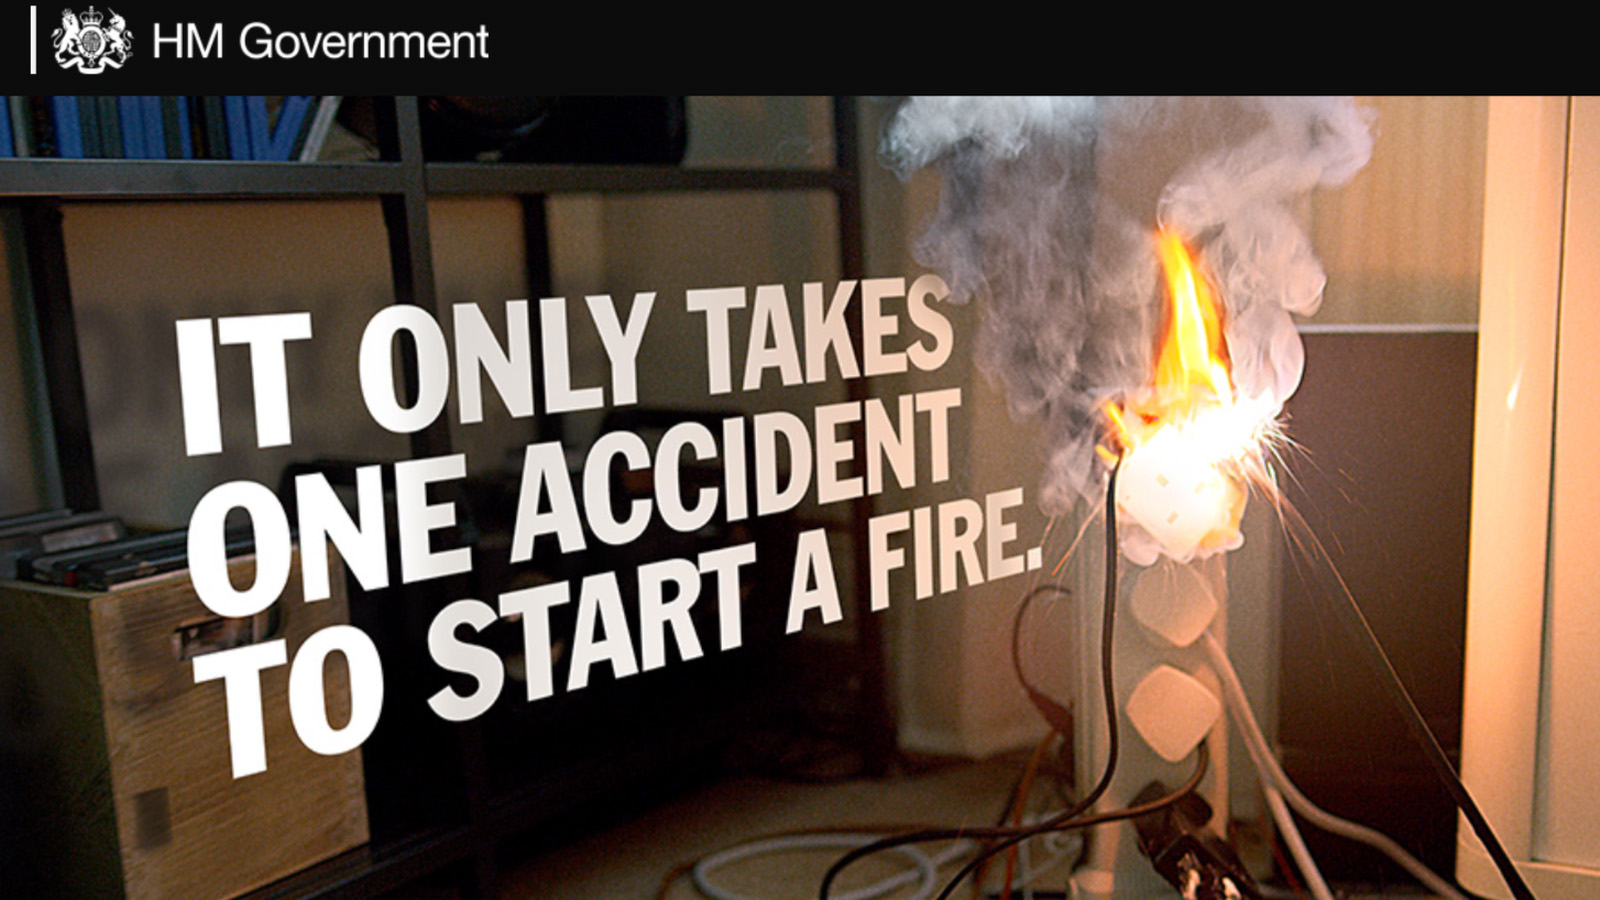 Electrical Fire Safety Week raises awareness of role appliances play in lethal blazes